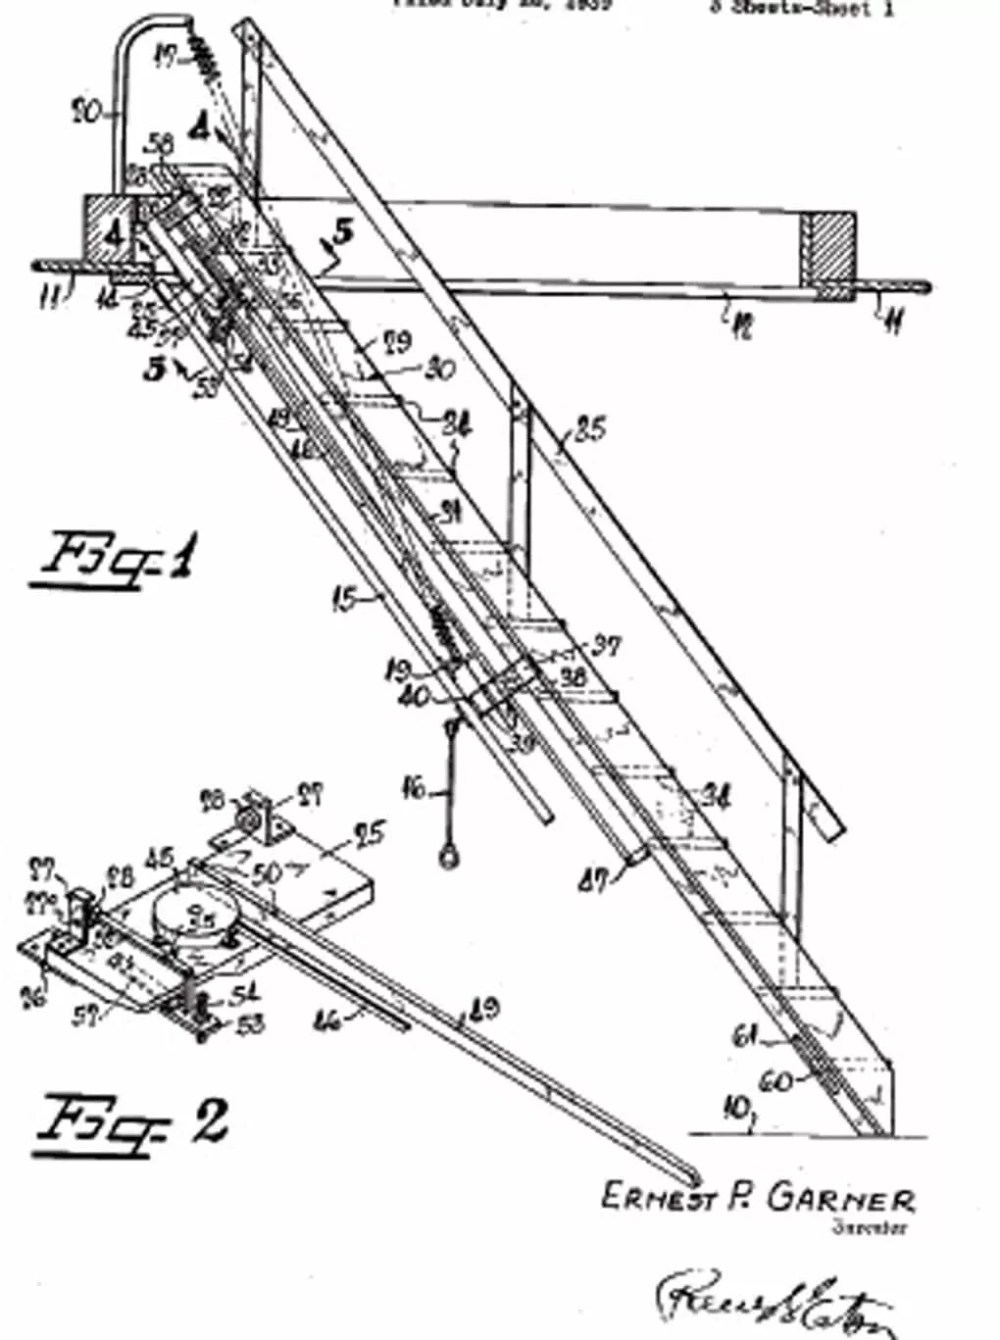 medium resolution of nielson who has her masters in history looked in the u s patent and trademark office records and discovered that garner s disappearing stairs first were